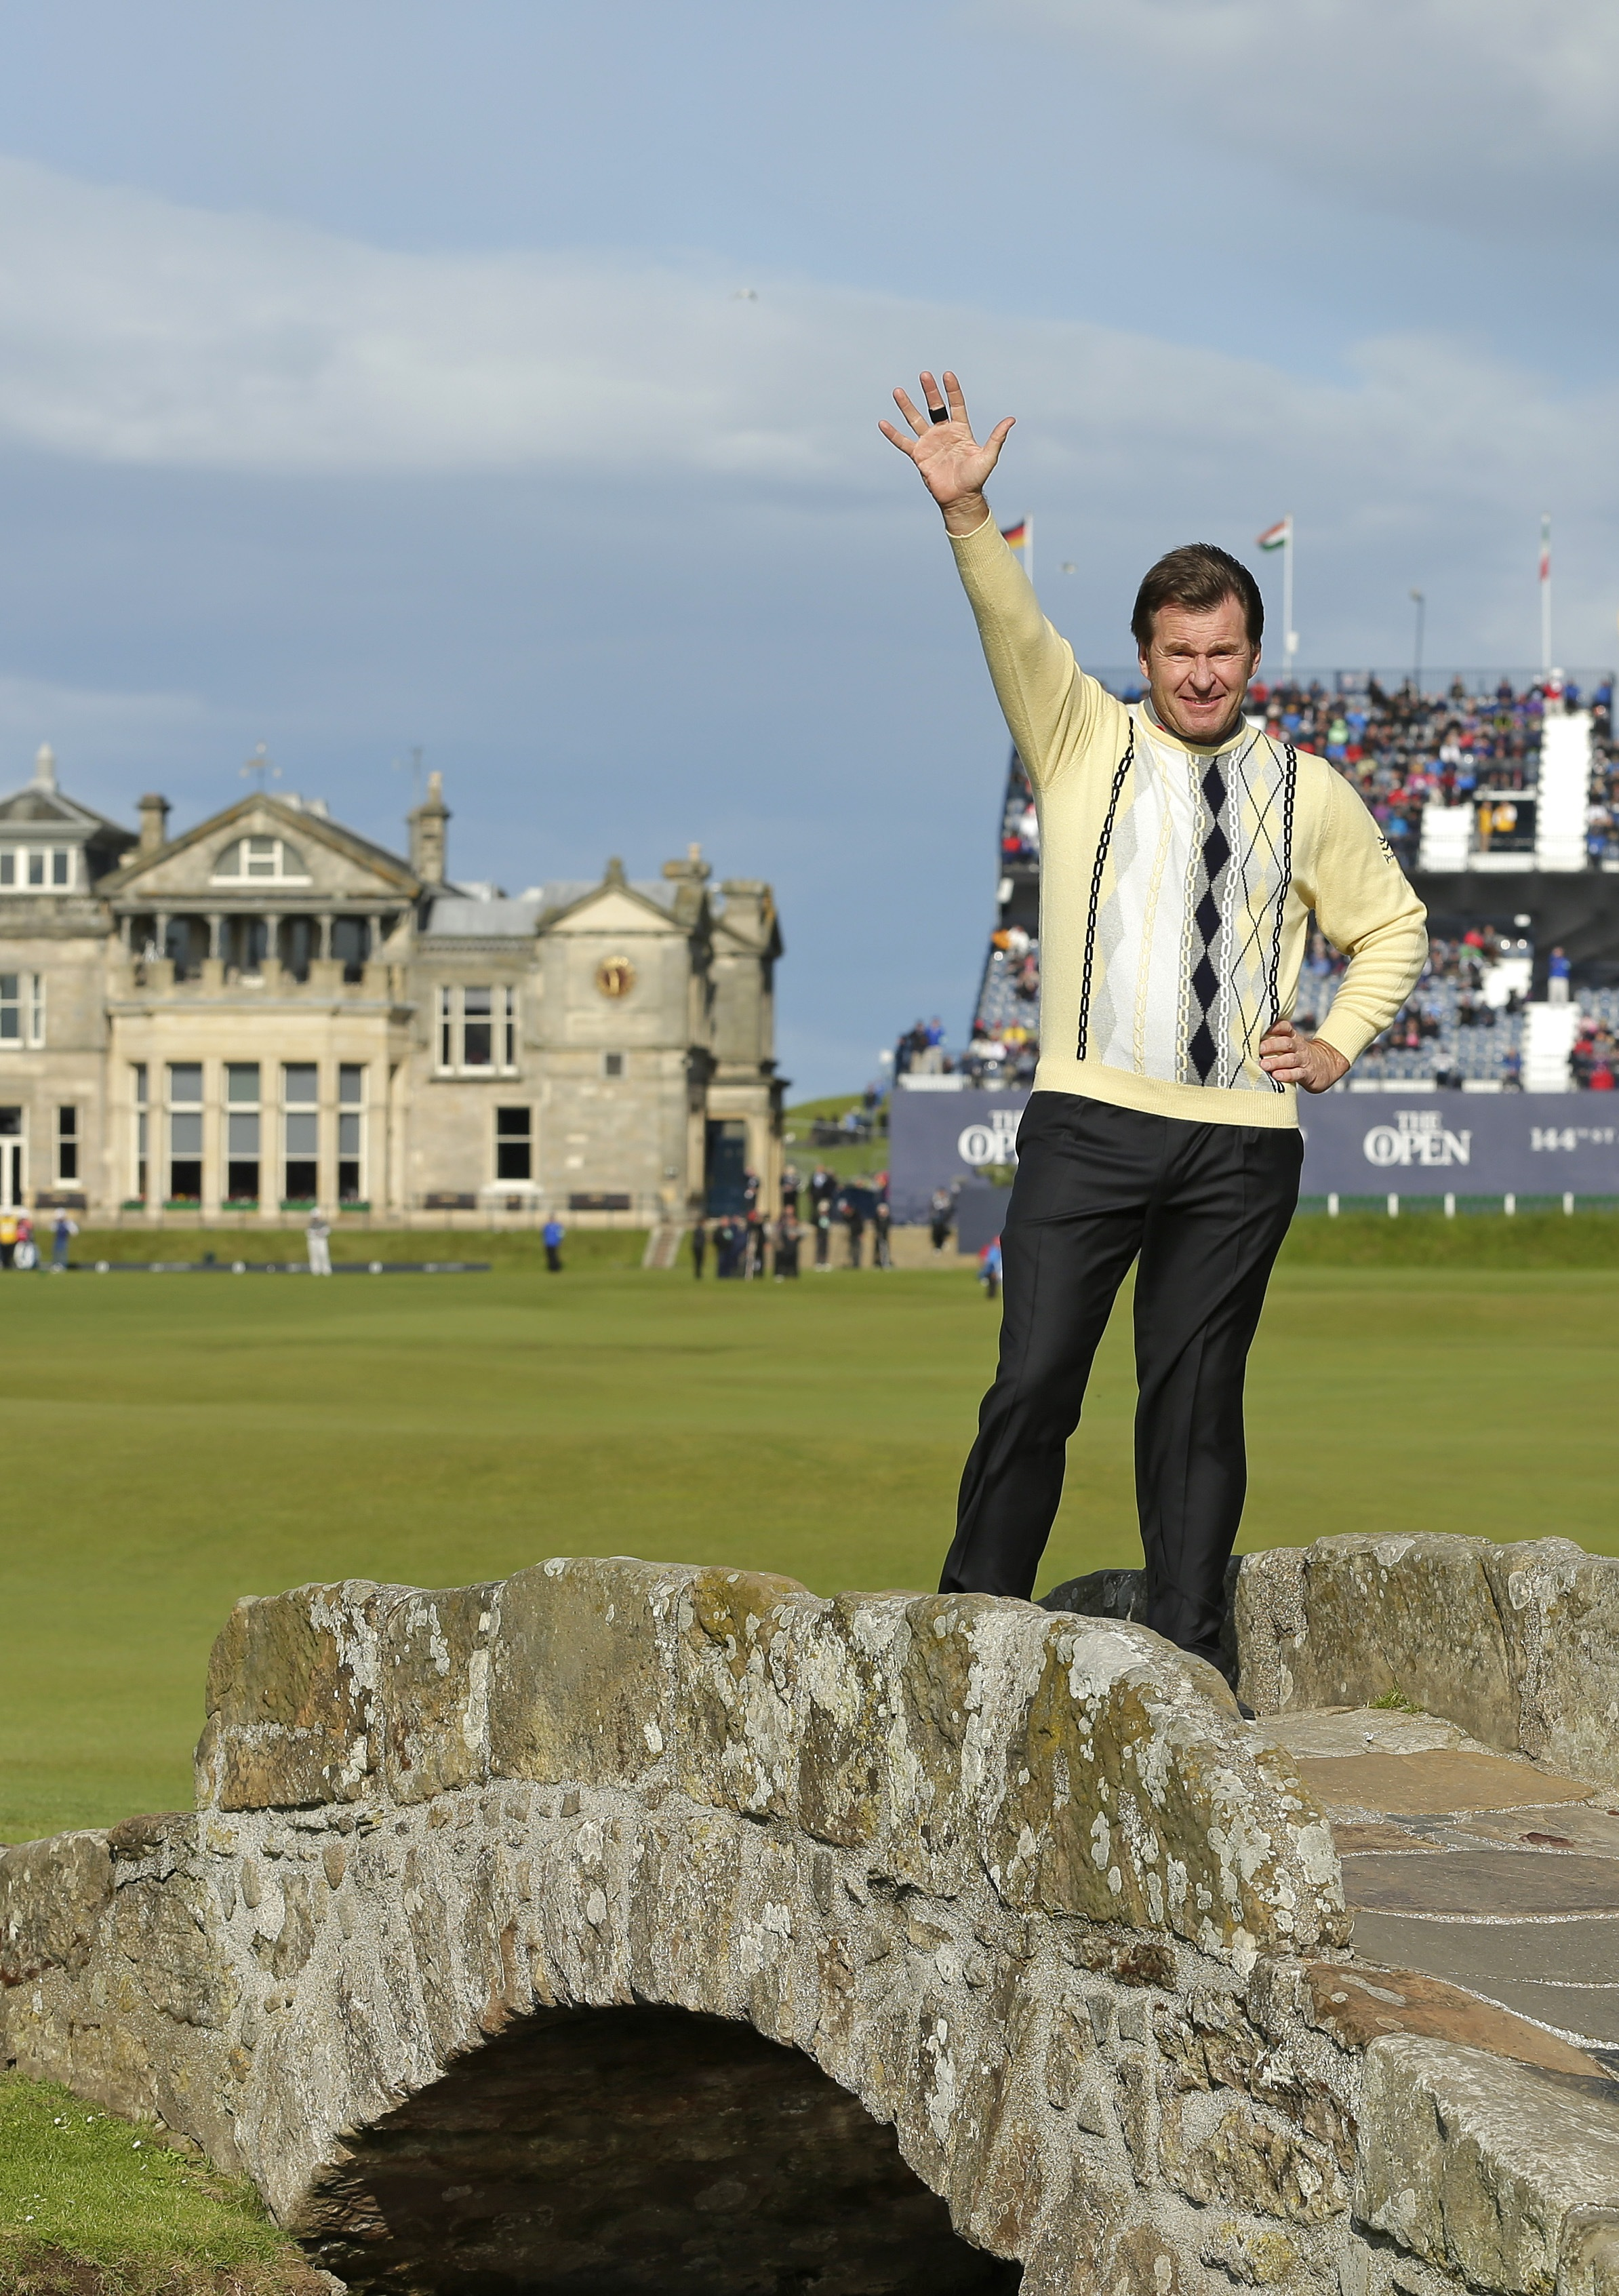 England's Nick Faldo waves as he poses for photographers on the Swilcan Bridge during the second round of the British Open at the Old Course at St. Andrews on Friday.